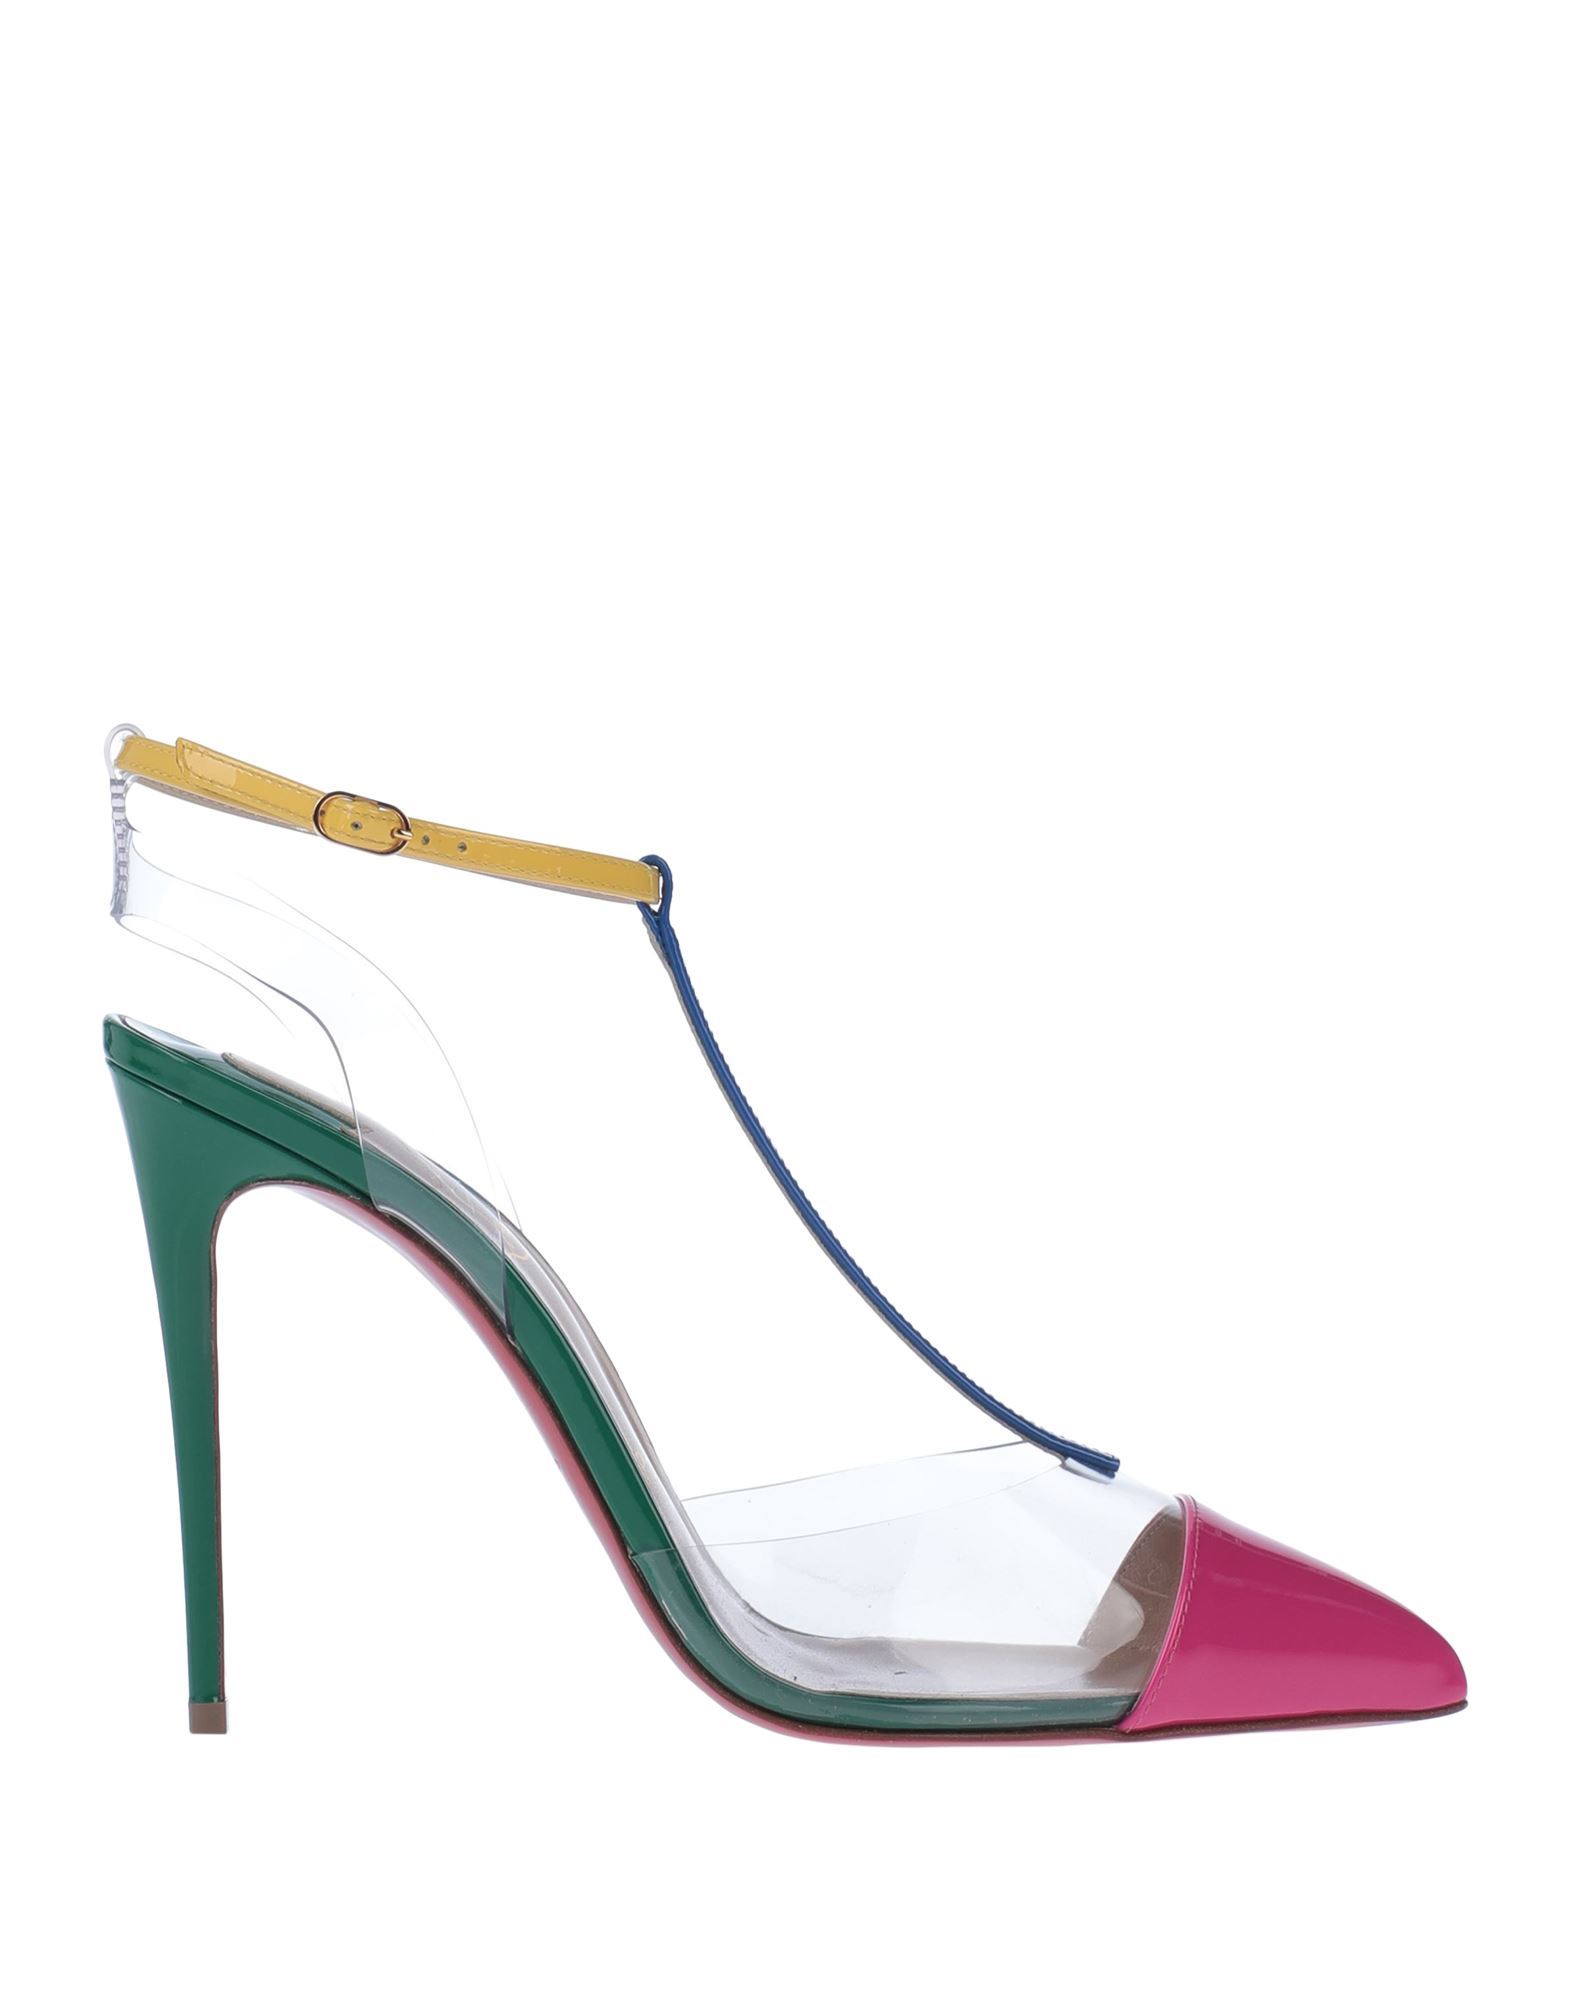 CHRISTIAN LOUBOUTIN Pumps. no appliqués, multicolor pattern, narrow toeline, buckle fastening, spike heel, leather sole, leather lining, contains non-textile parts of animal origin, small sized. Soft Leather, PVC - Polyvinyl chloride